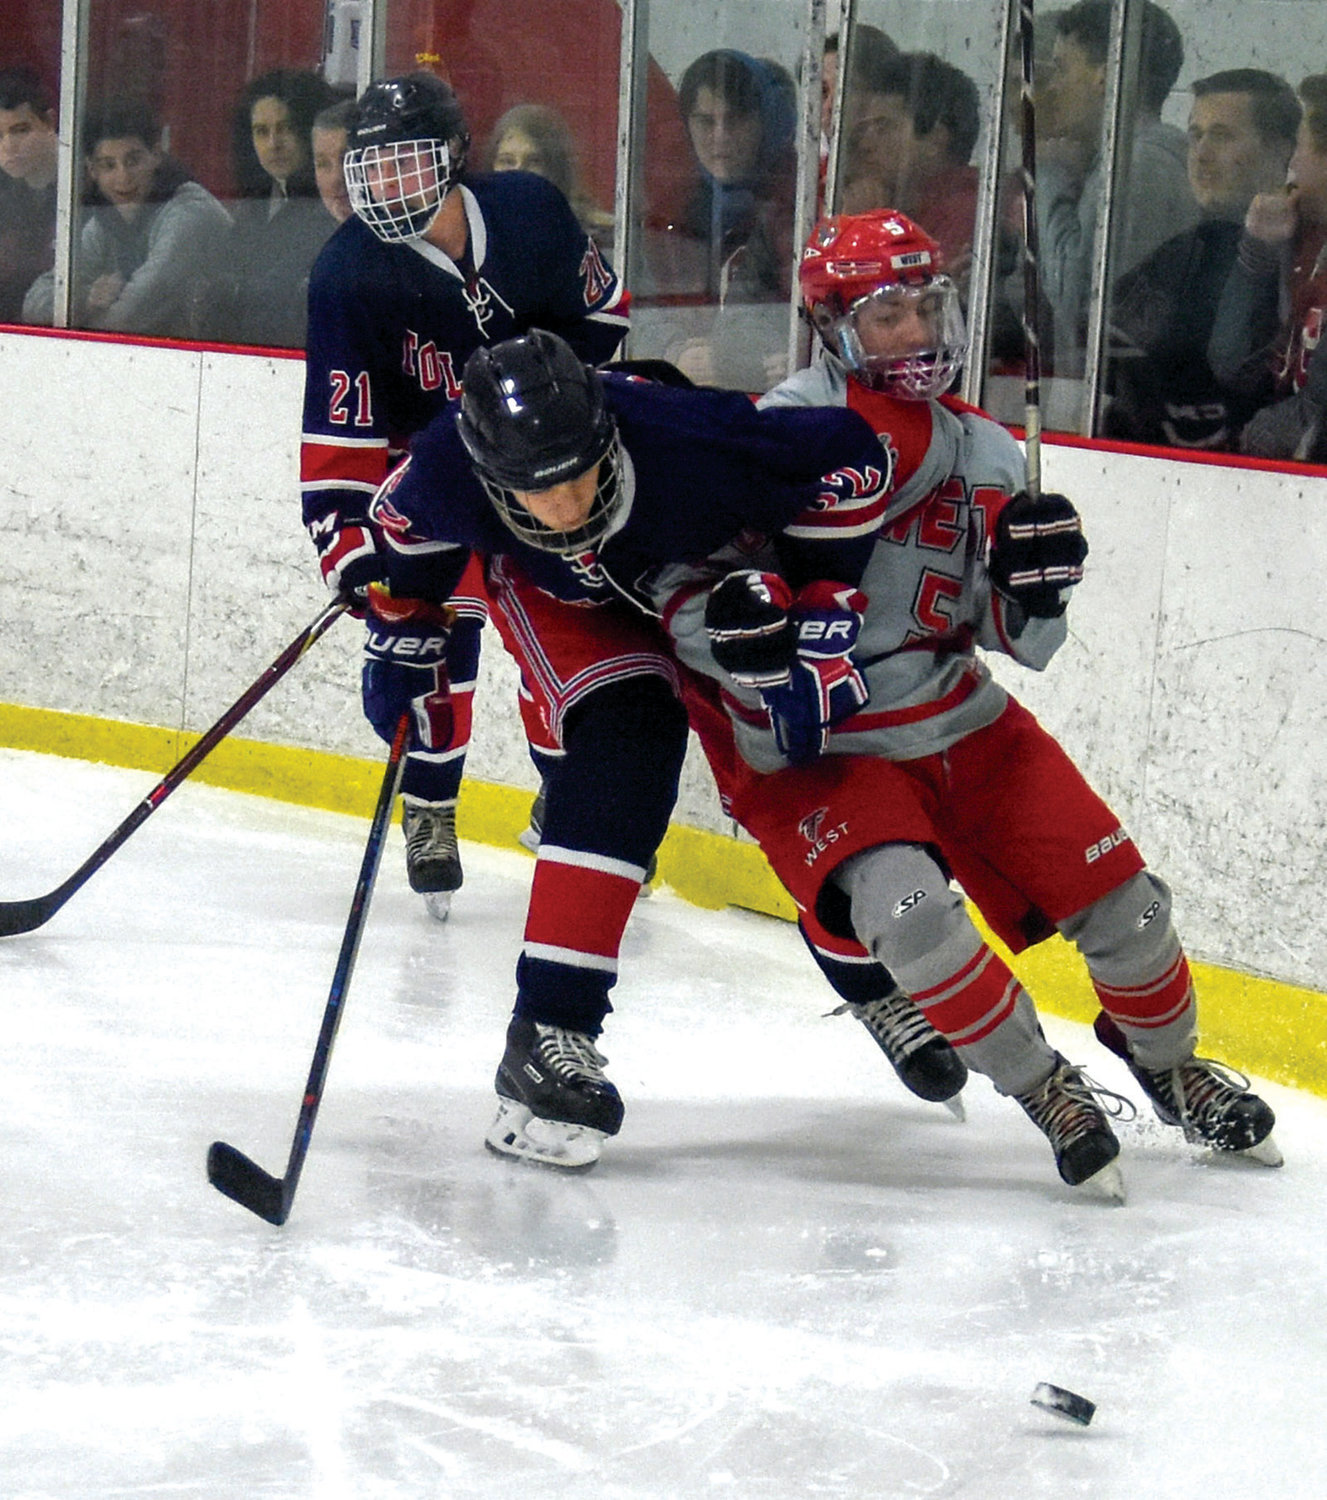 ALONG THE BOARDS: Cranston West's Max Savaria battles against a Toll Gate defender during their matchup last week at home. West took home a 7-4 win.